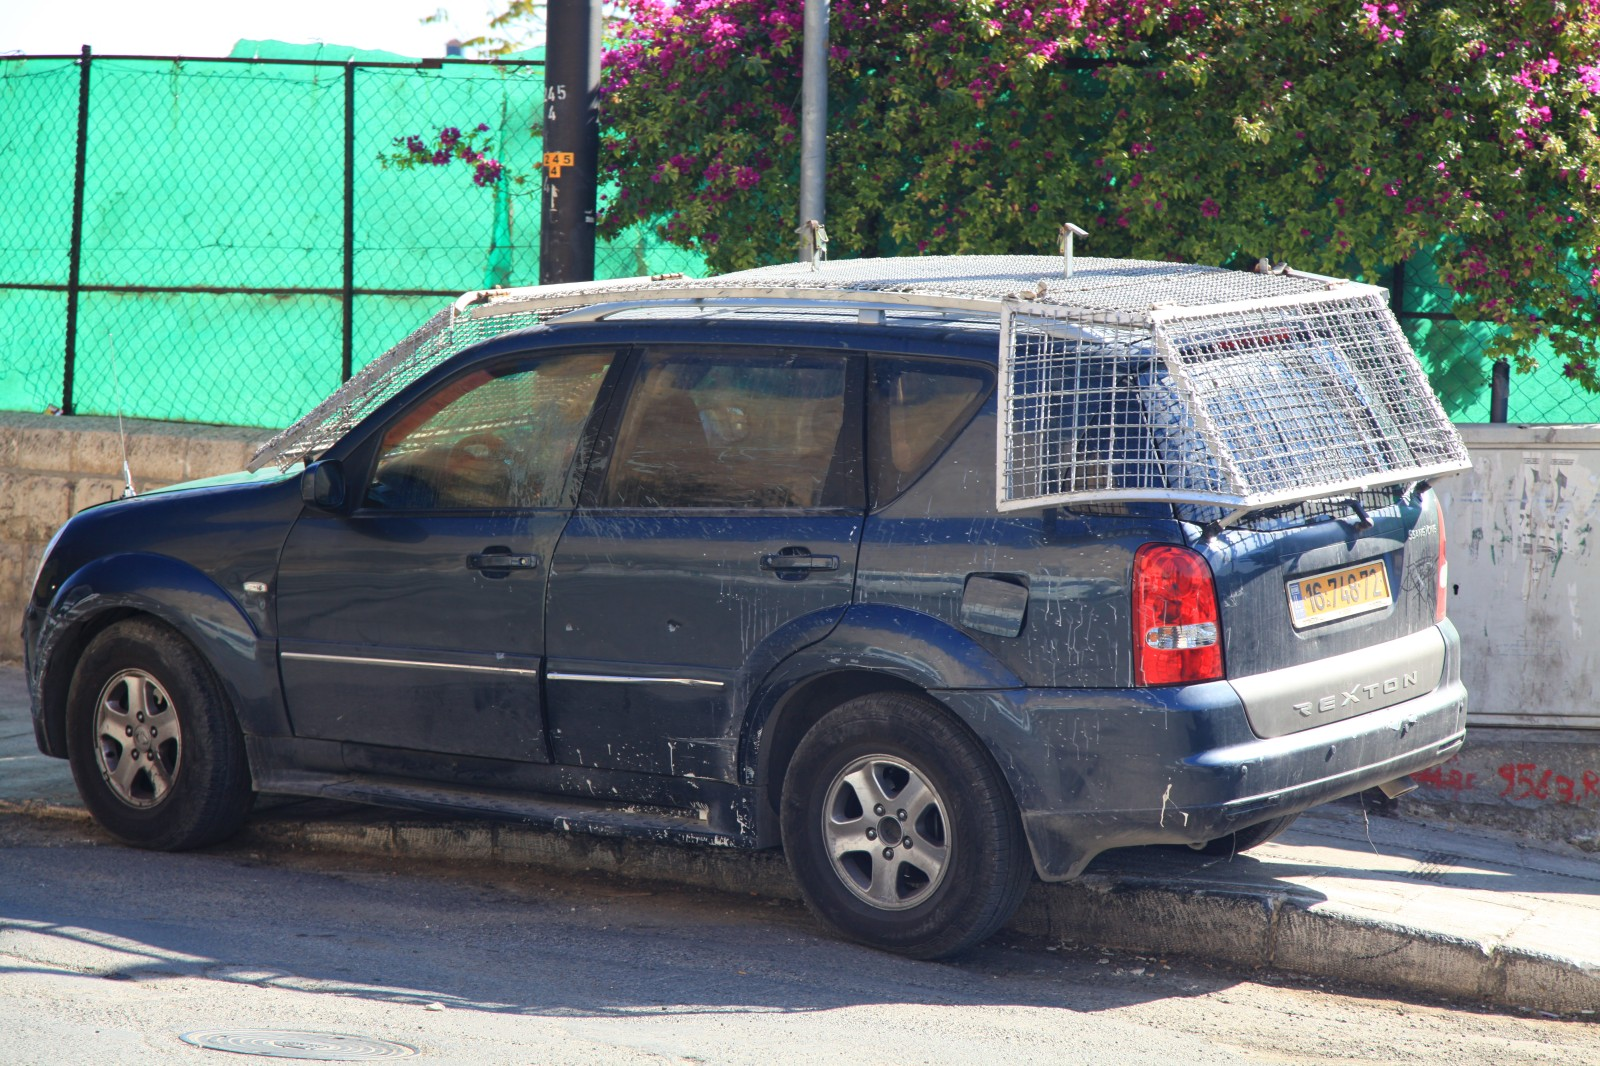 I wonder why in East Jerusalem would you need such a car?